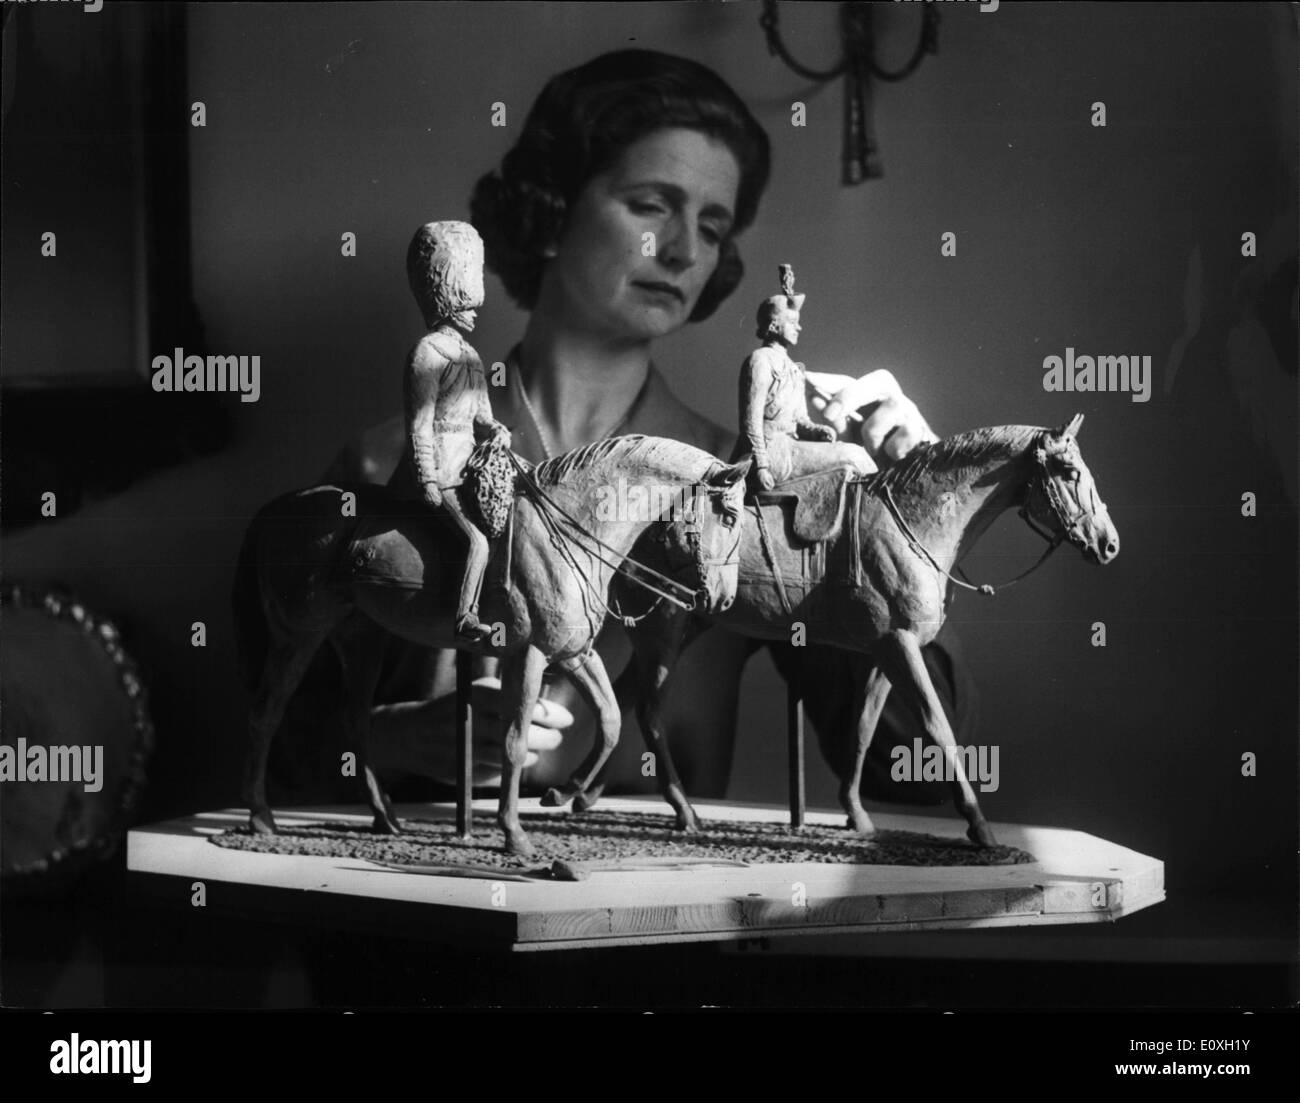 Oct. 10, 1966 - Statuette of the Queen and Duke. For the past few weeks, Sculptress Jean Walwyn has been in the Royal Mews taking a close look at the chestnut gelding Imperial and his stable companion, Linnhe. She has been commissioned by the United Service Club to create a statuette of the Queen and Prince Philip at last year's Trooping the Colour ceremony. It was the club's 150th, anniversary. Miss Walwyn, cousin of racehorse trainer, Fulke Walwyn, has almost finished the Plasticine models. They will then be cast in bronze and sprayed with gold - Stock Image